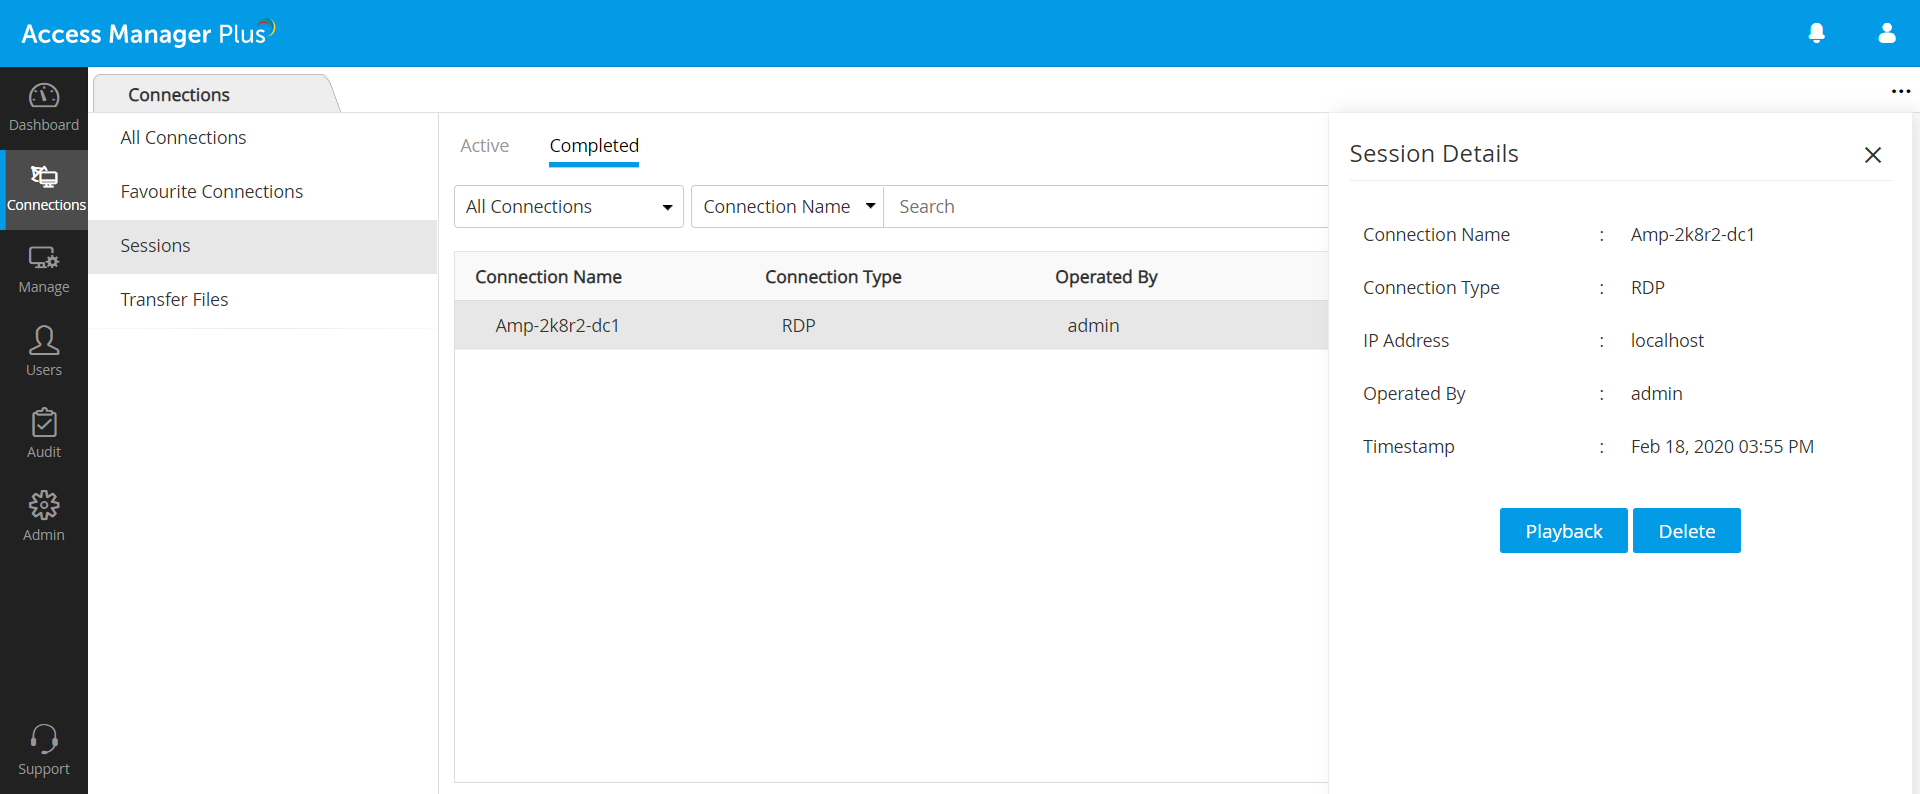 reviewing past sessions Access Manager Plus